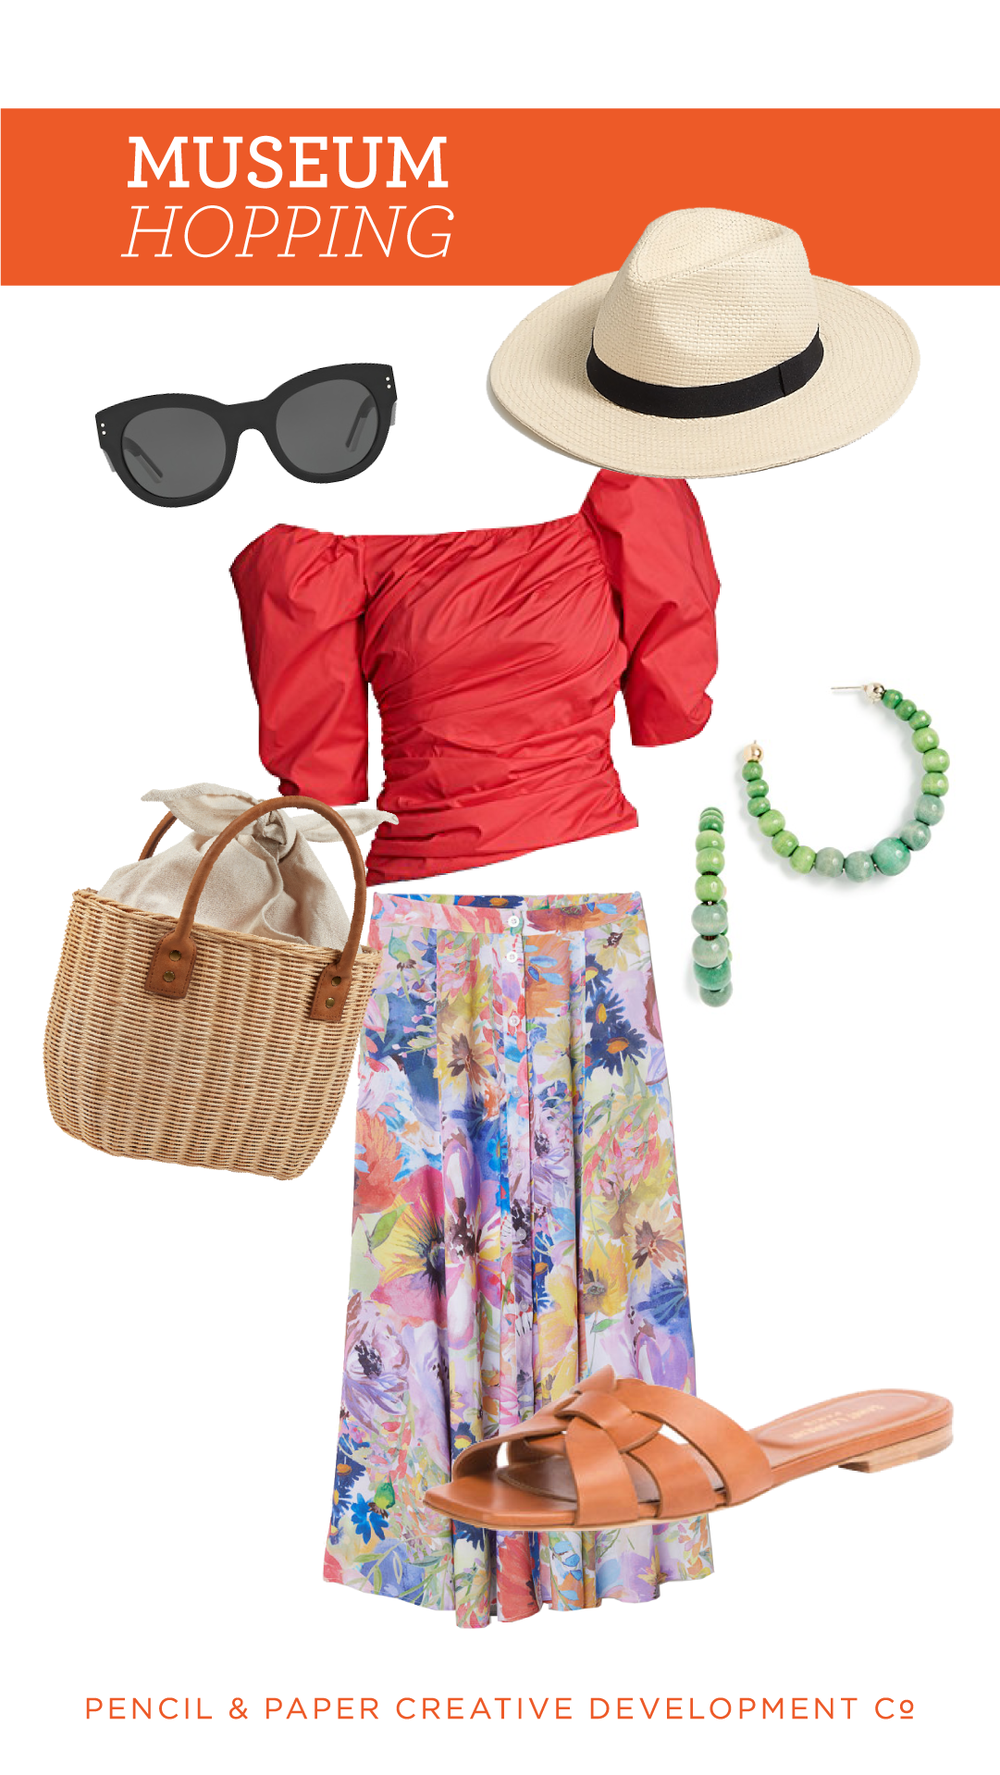 museum hopping:   skirt  /  blouse  /  handbag  /  sandals  /  sunglasses  /  earrings  /  panama hat